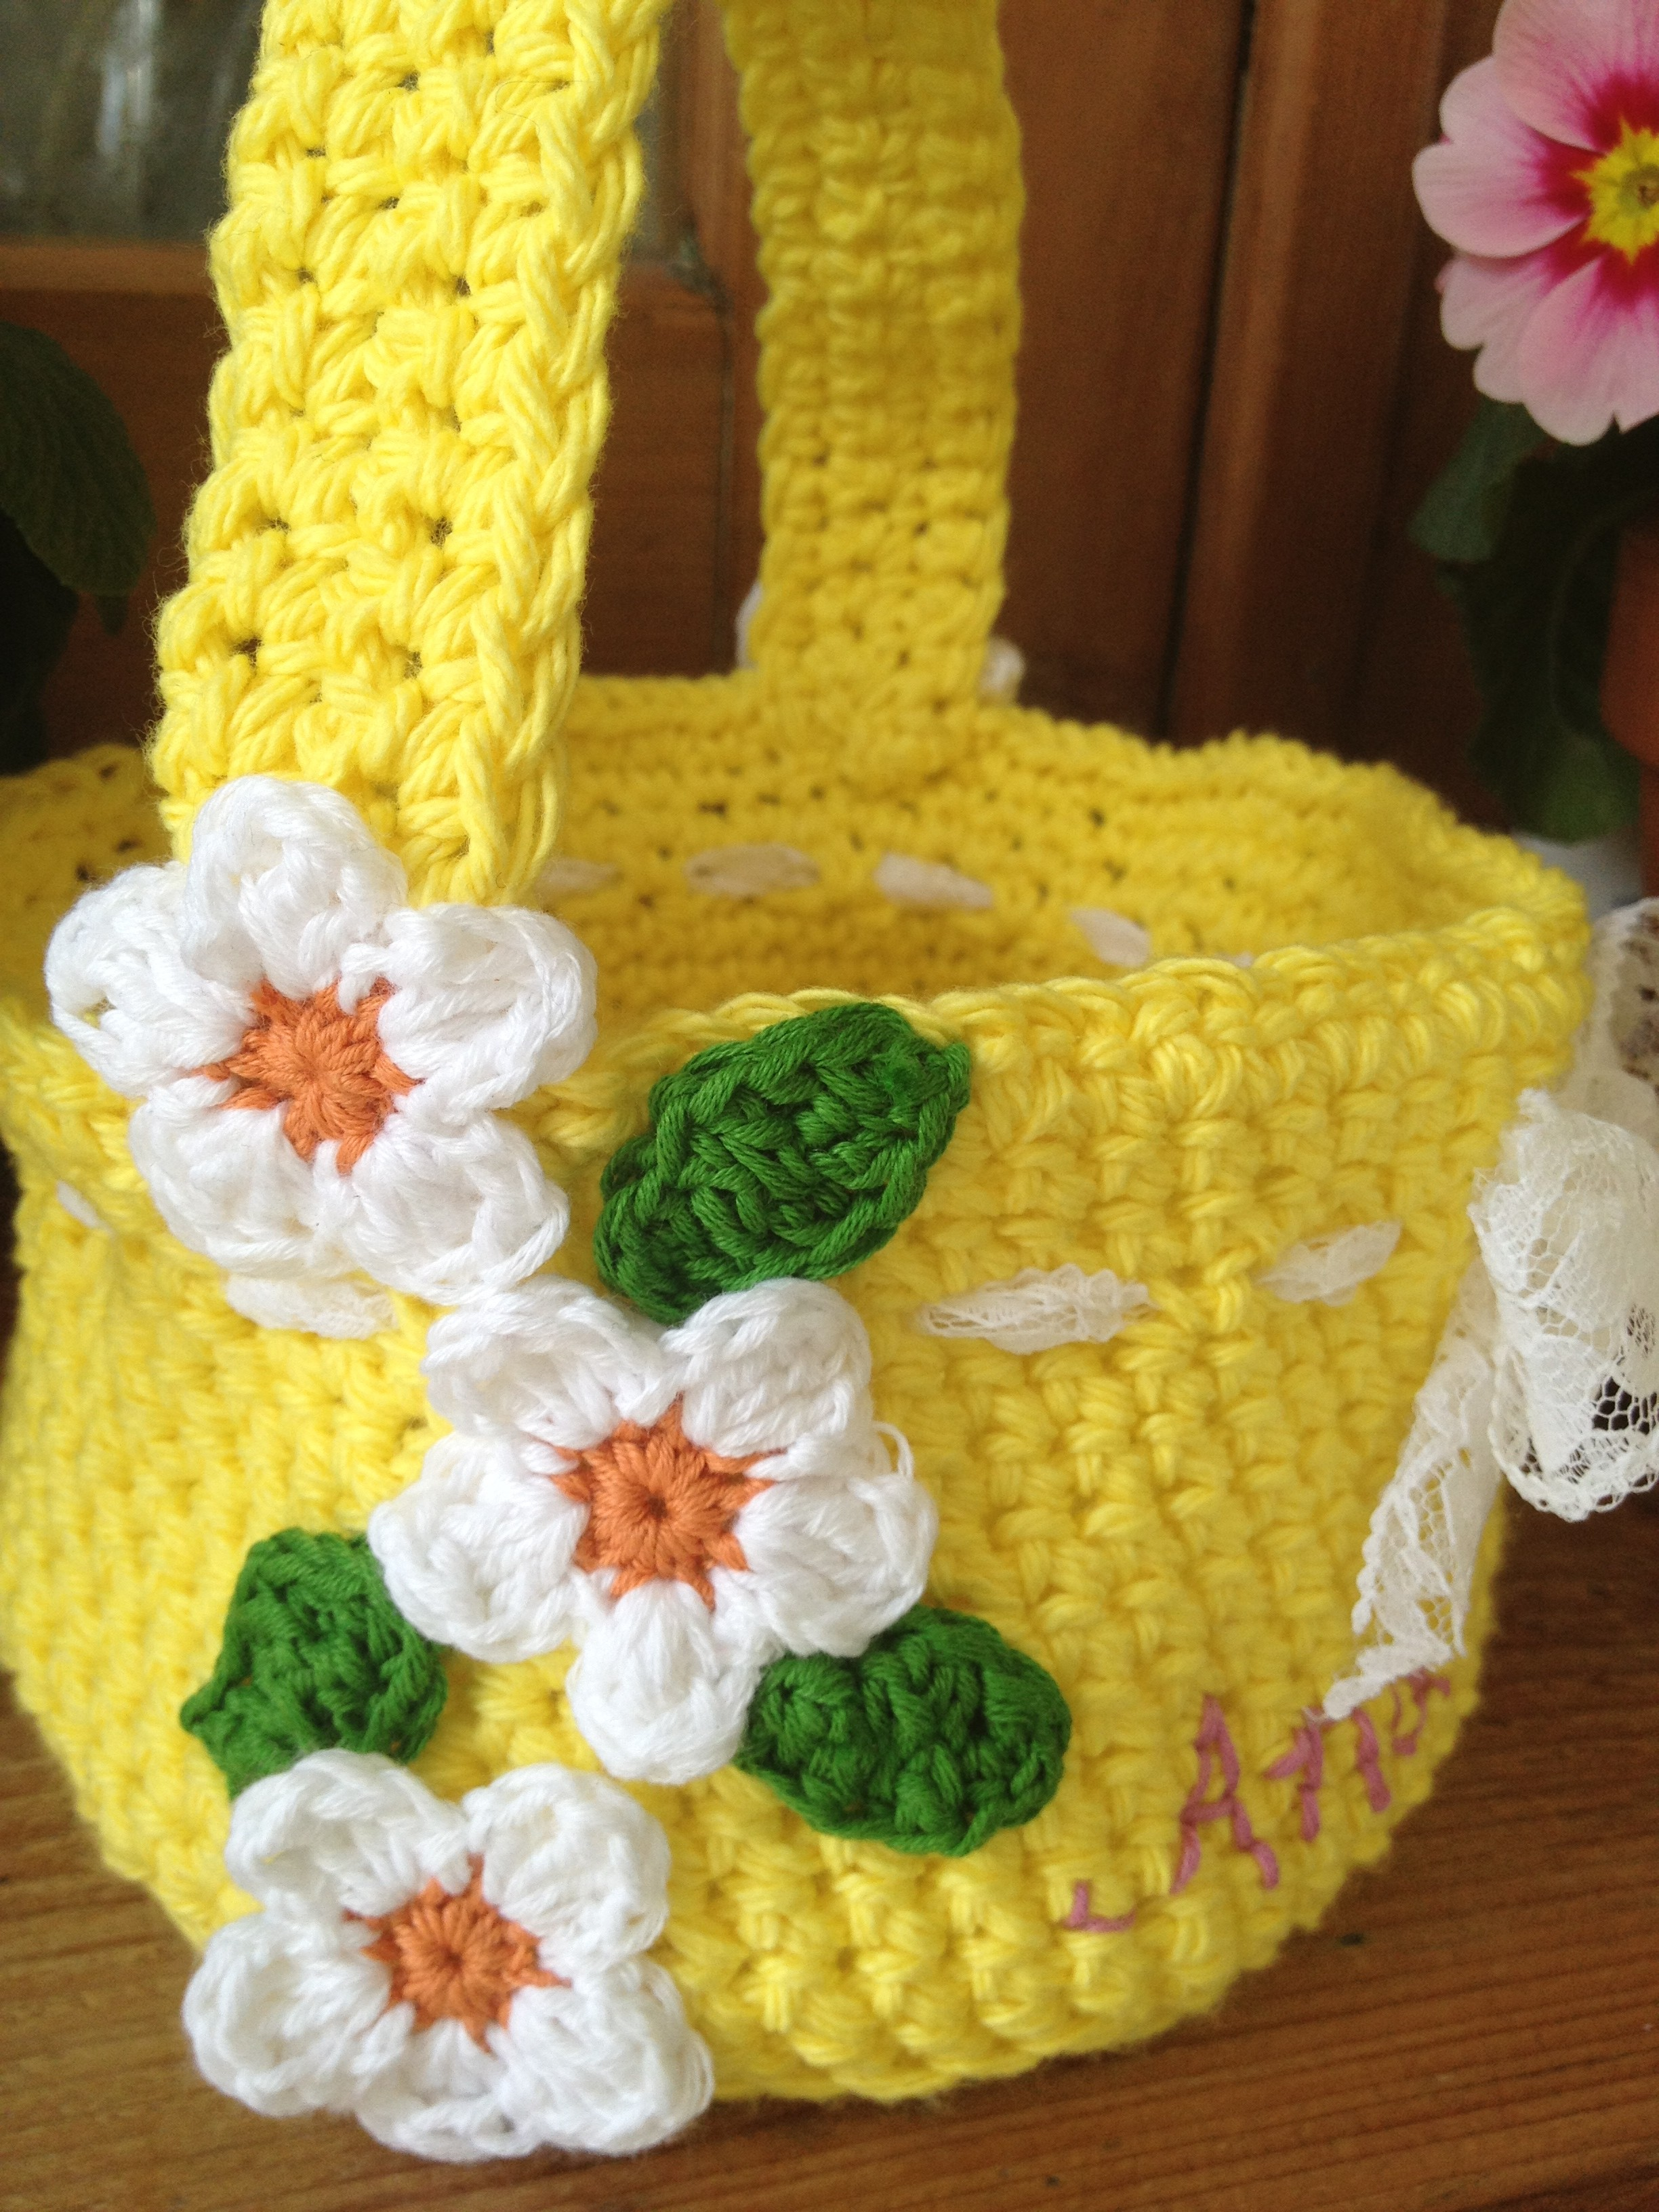 Easter Crochet Patterns For Beginners : Crochet Easter Basket by Re-made by Sam